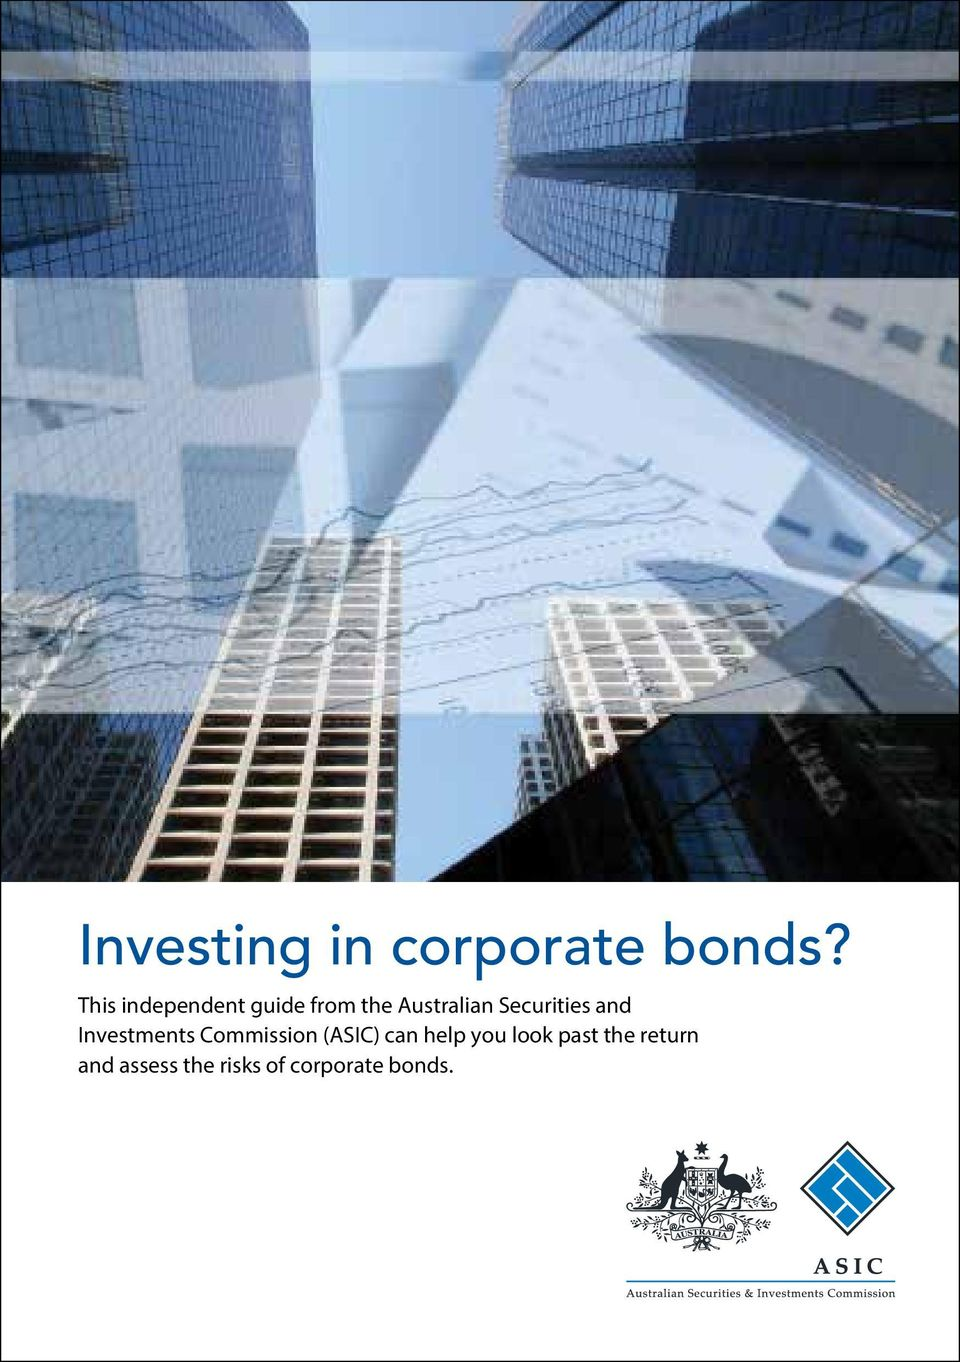 Securities and Investents Coission (ASIC) can